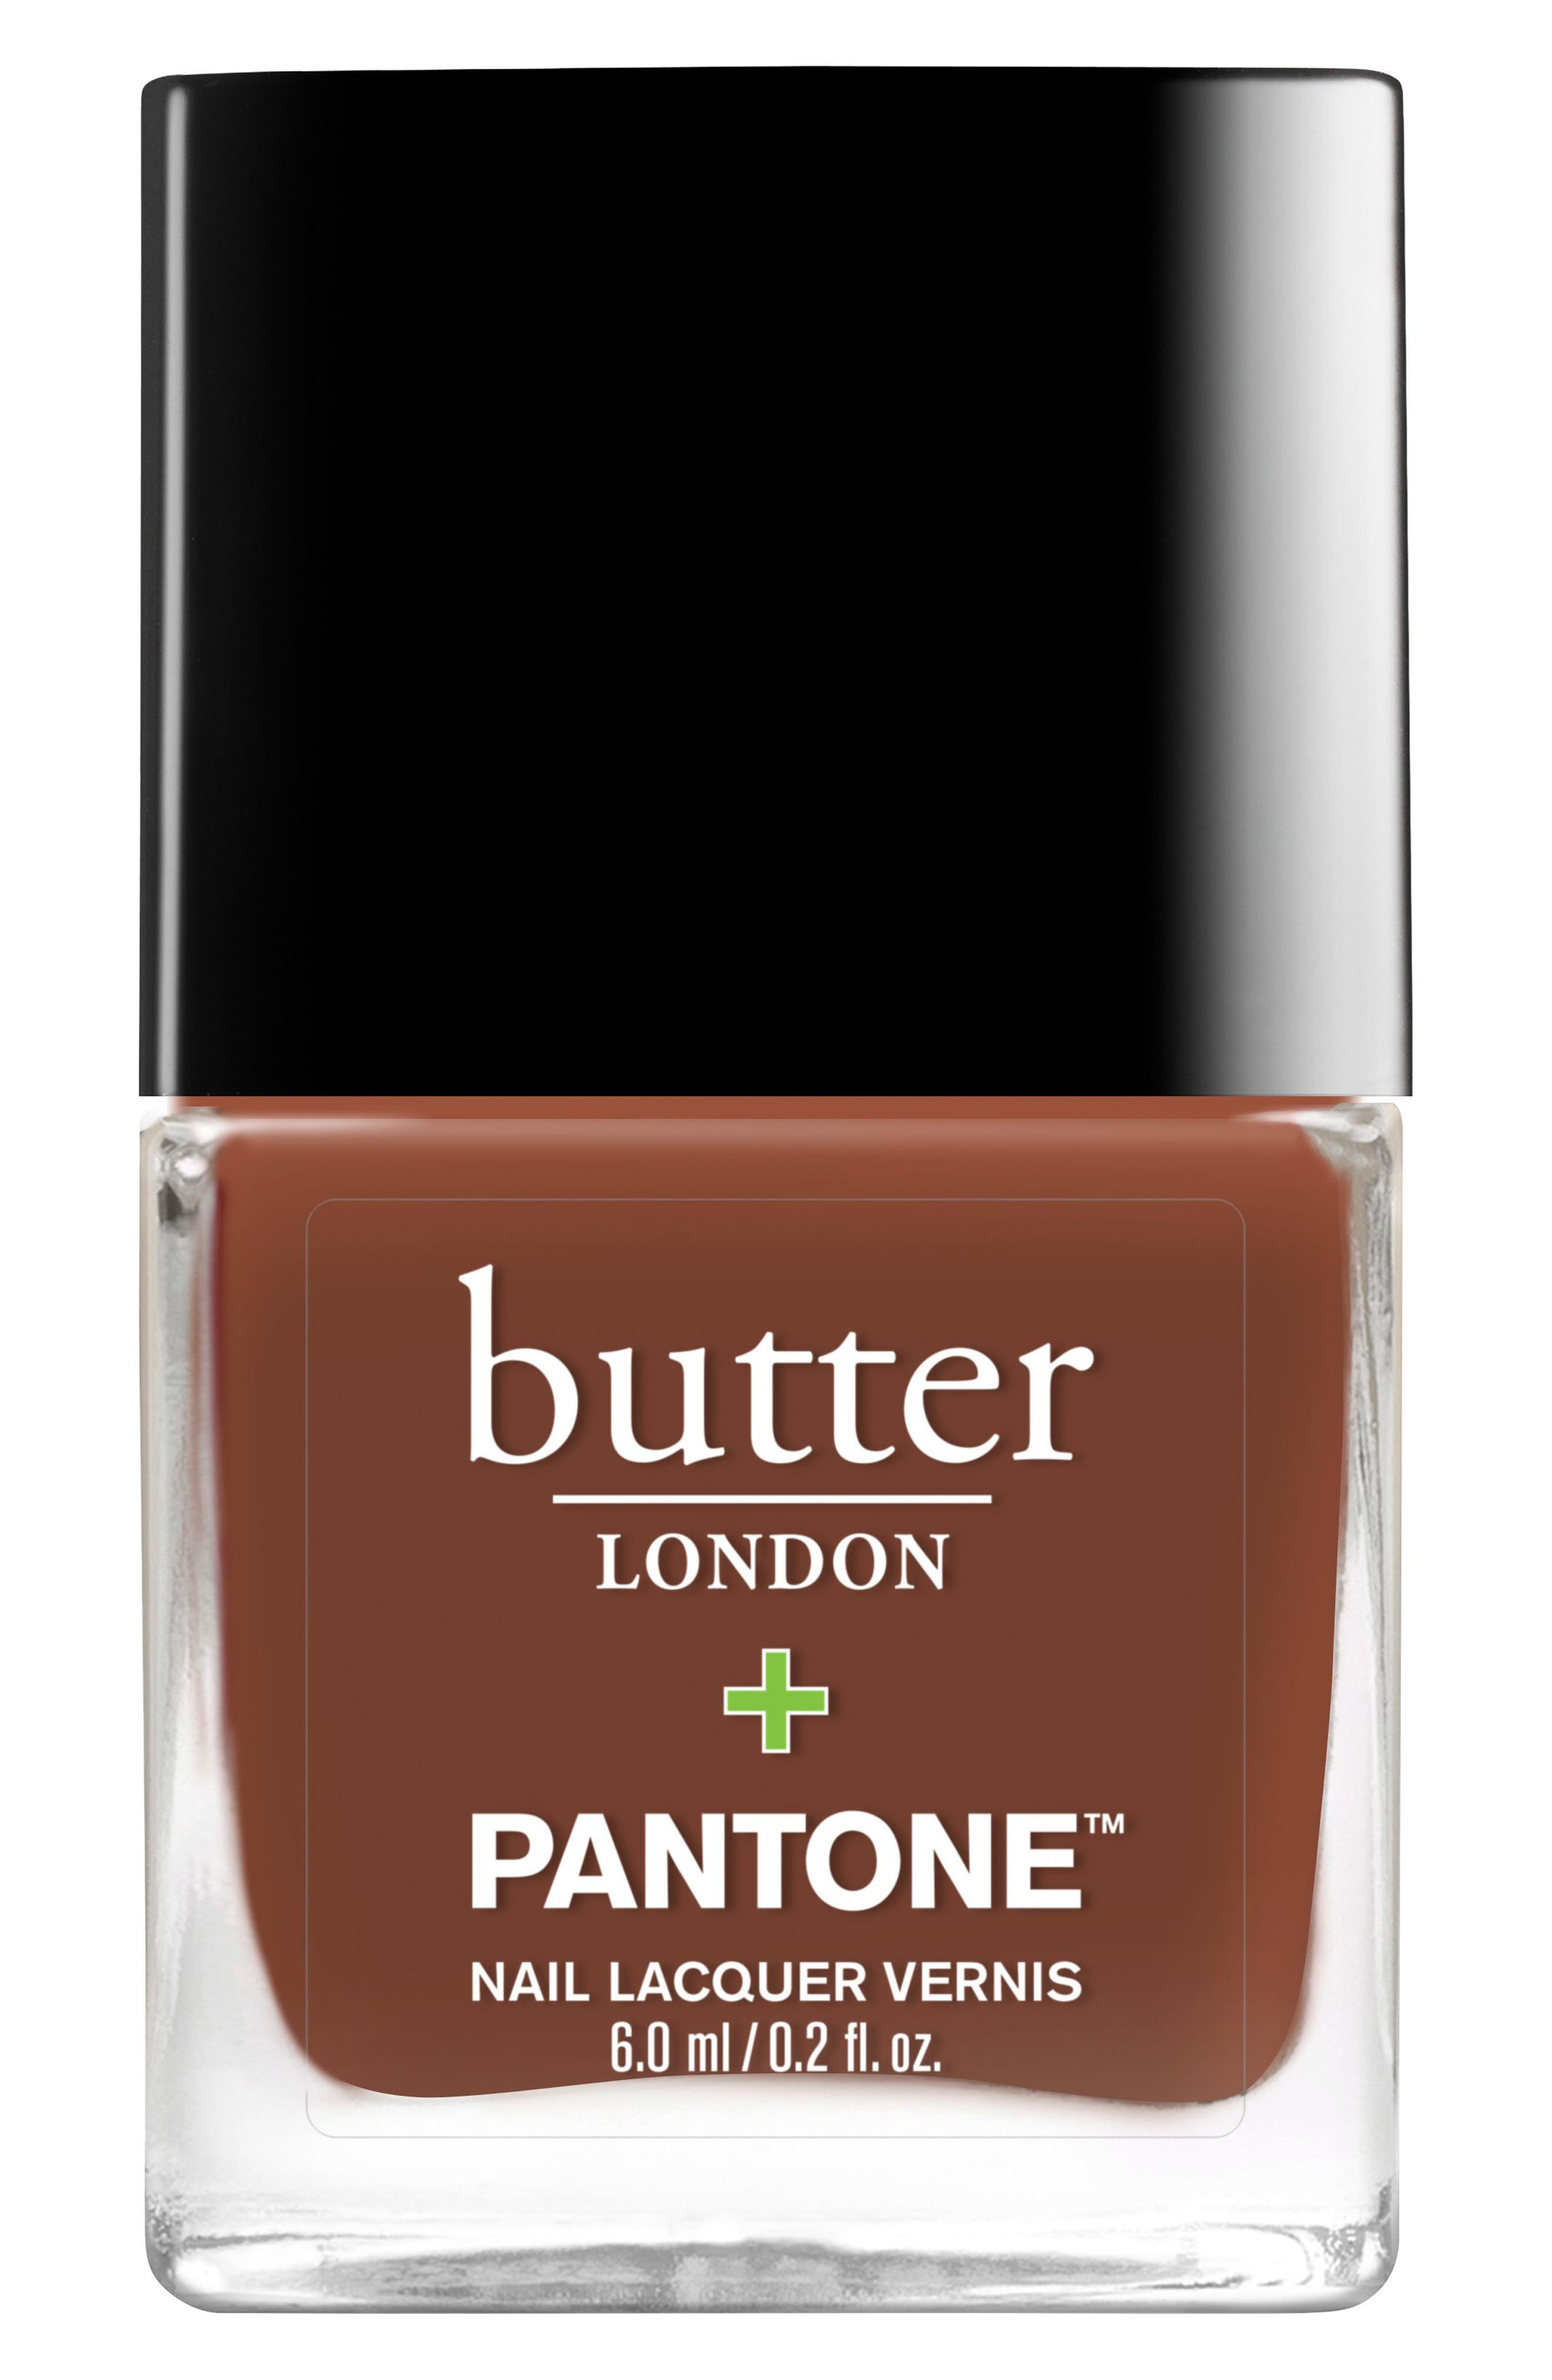 BUTTER LONDON Pantone Trend Mini Nail Lacquer